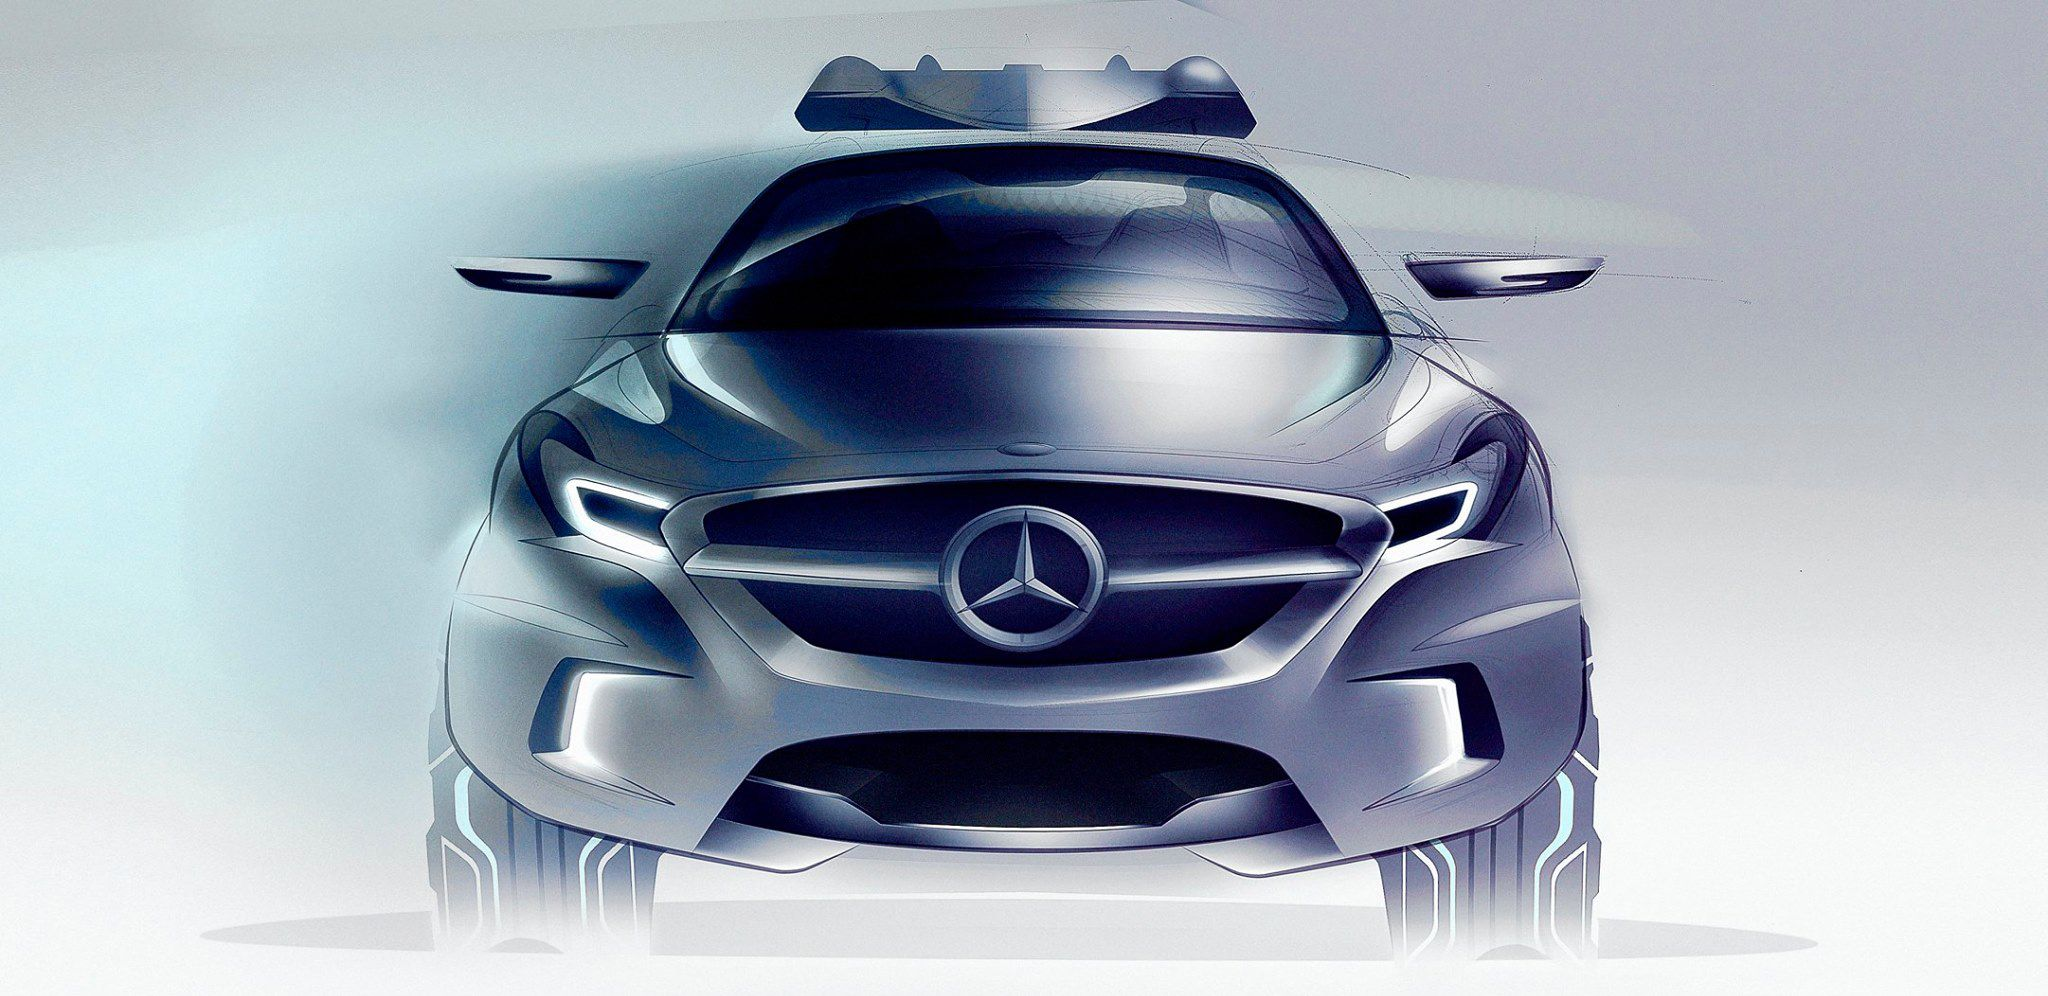 M Benz Suv Front Sketch Car Sketch Pinterest Benz Suv